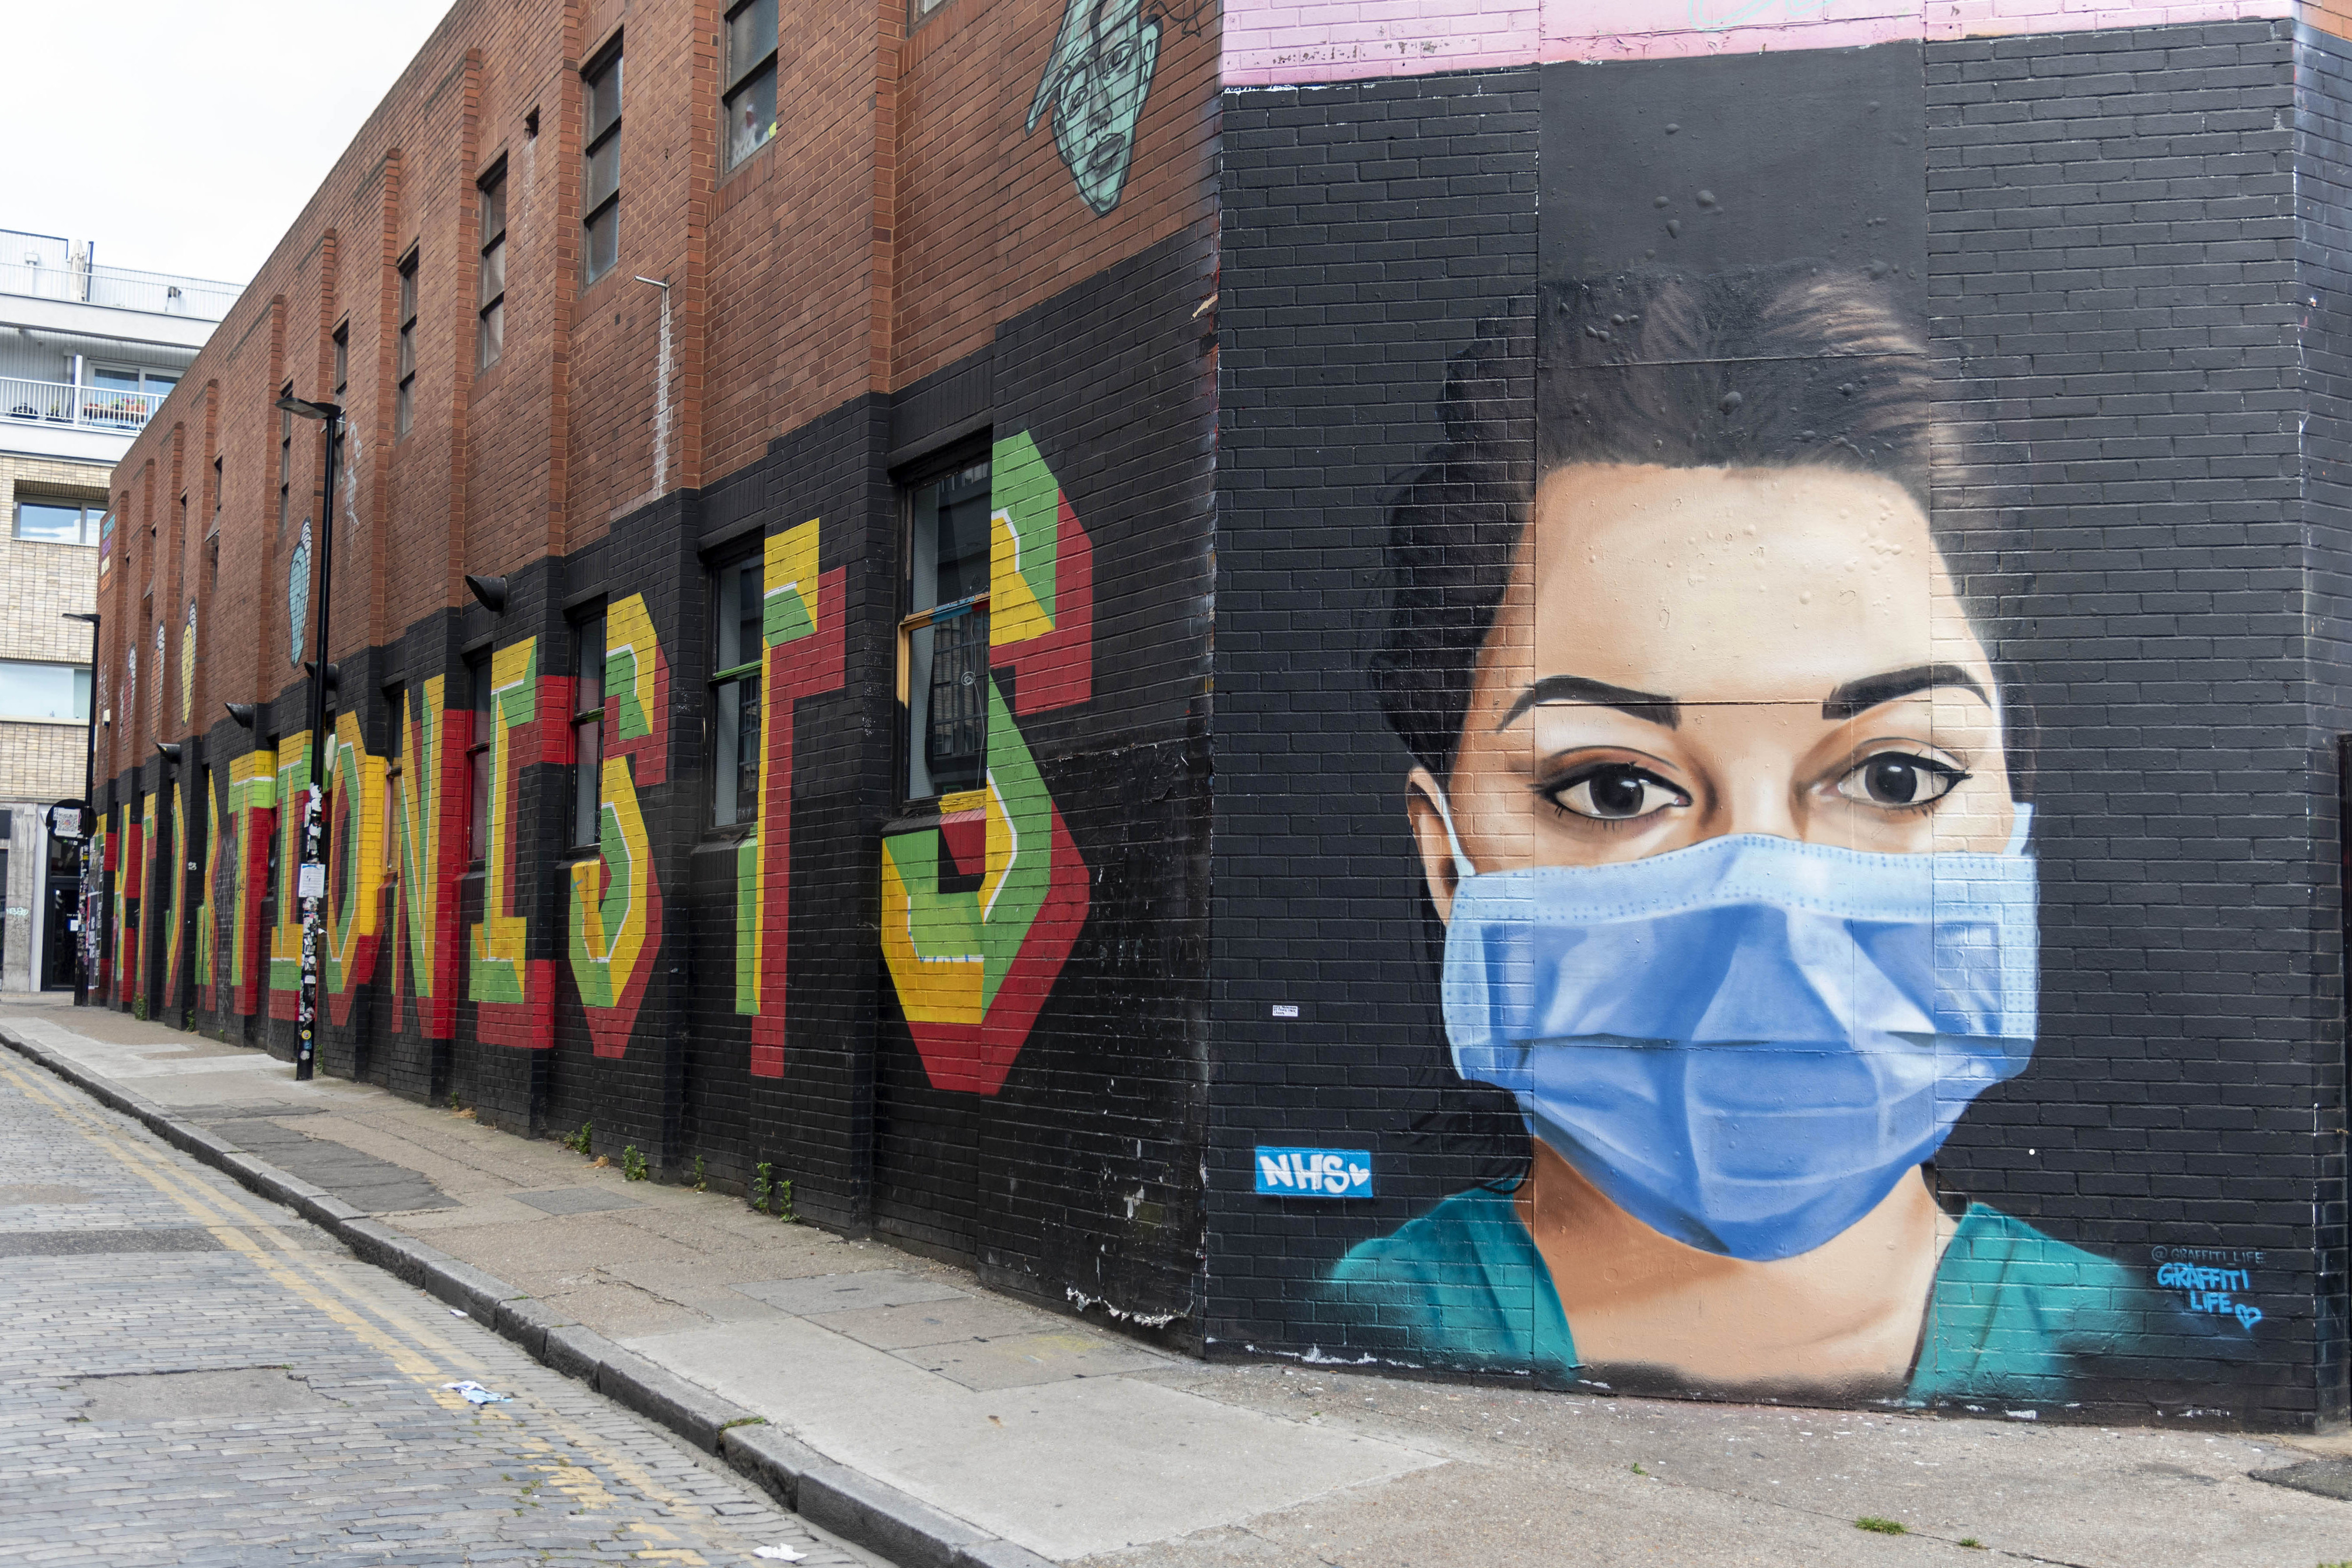 LONDON, UNITED KINGDOM - 2020/05/24: A view of a coronavirus awareness mural and a tribute to NHS workers drawn on a wall during the coronavirus crisis. (Photo by Dave Rushen/SOPA Images/LightRocket via Getty Images)